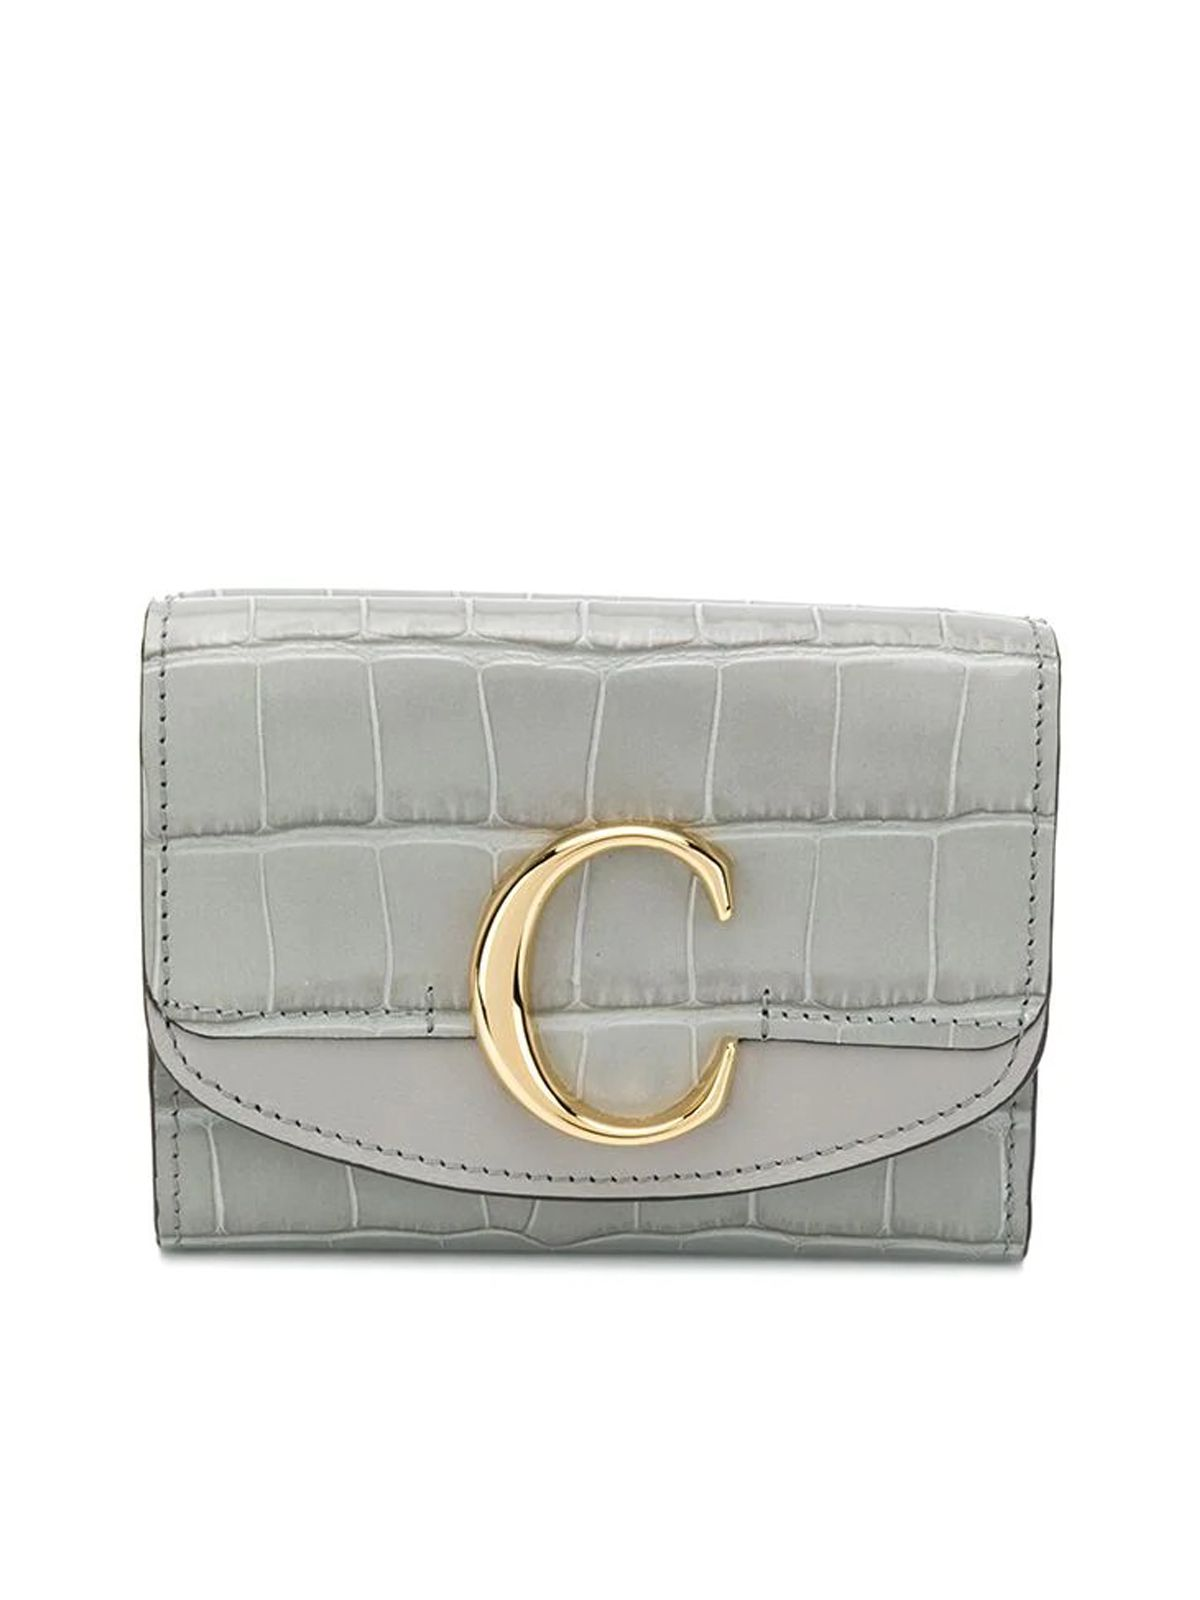 Chloé CHLOÉ WOMEN'S GREY LEATHER WALLET